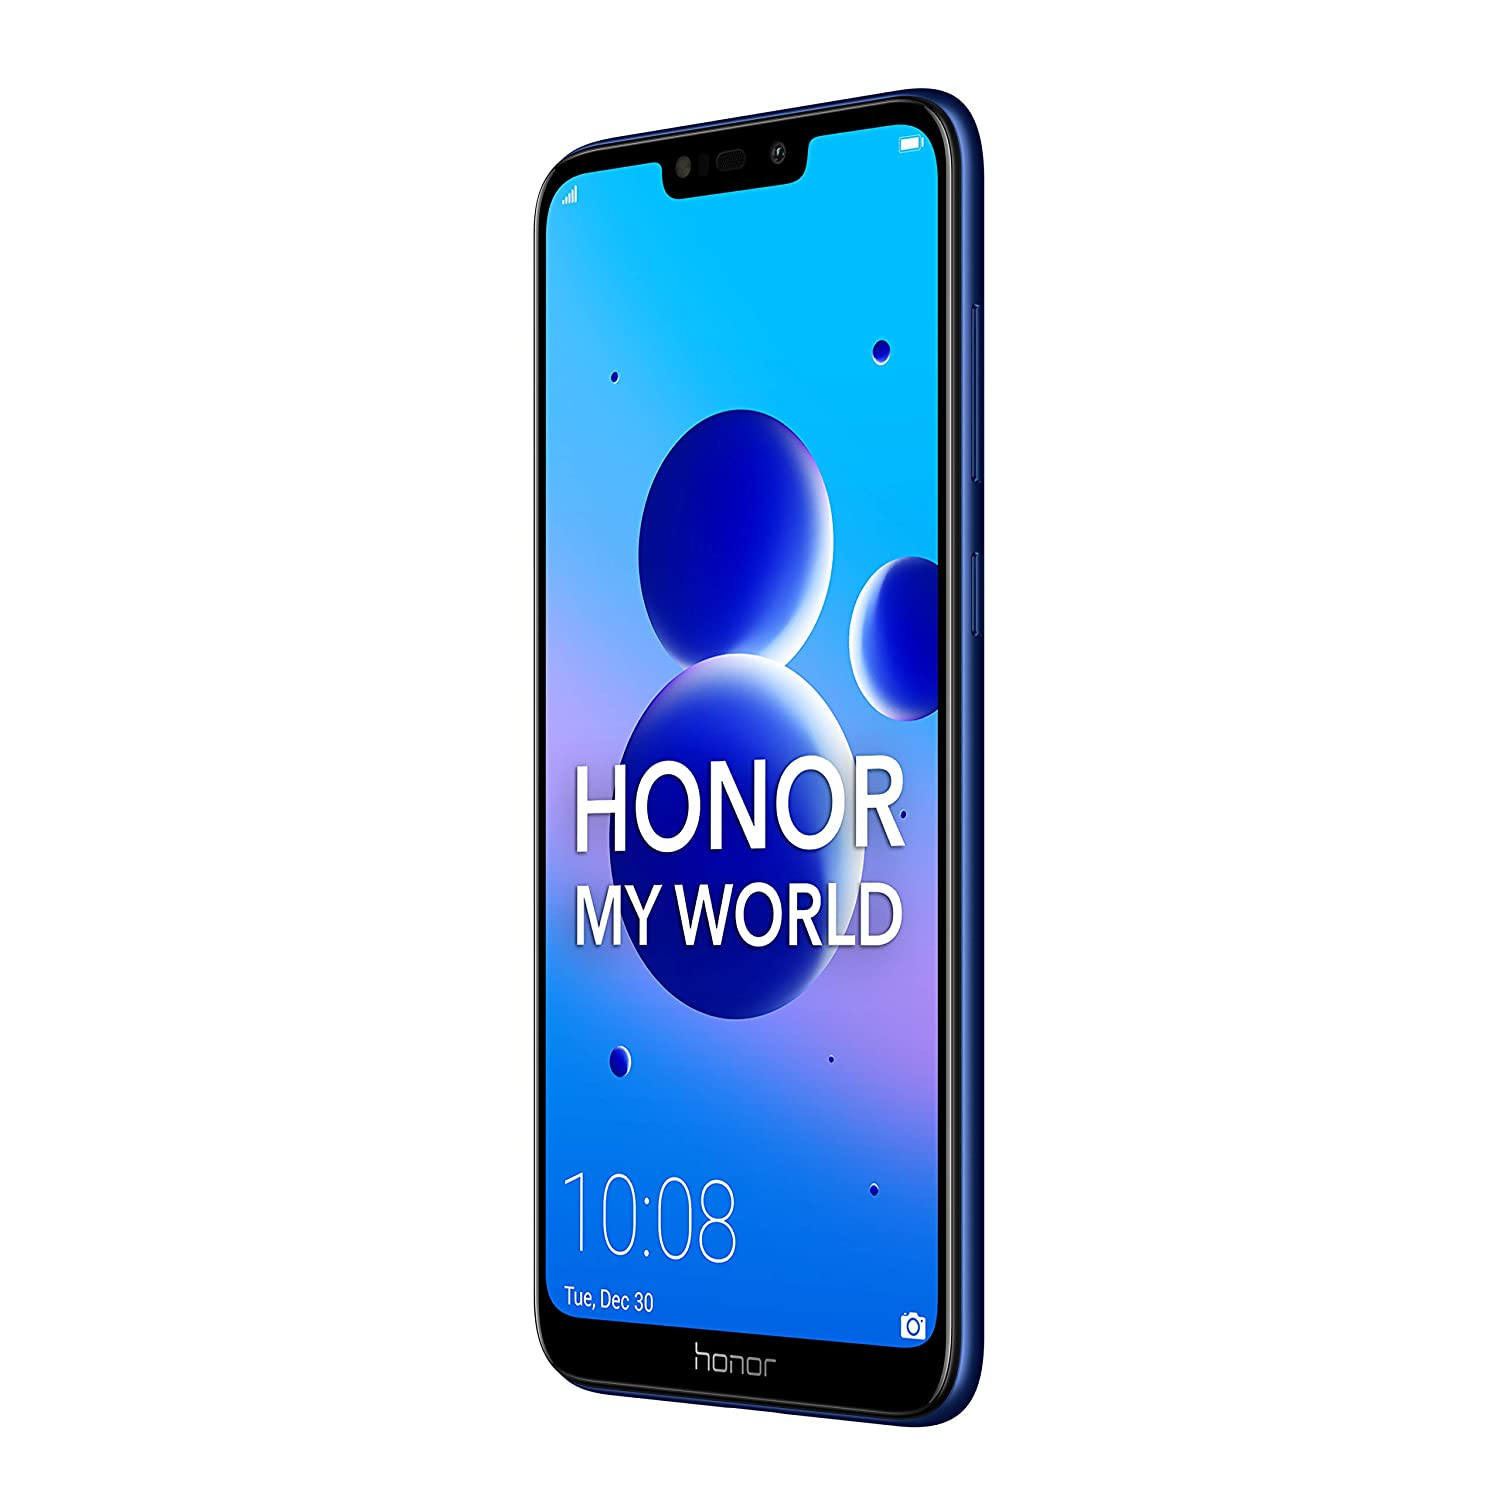 software to track cell Honor